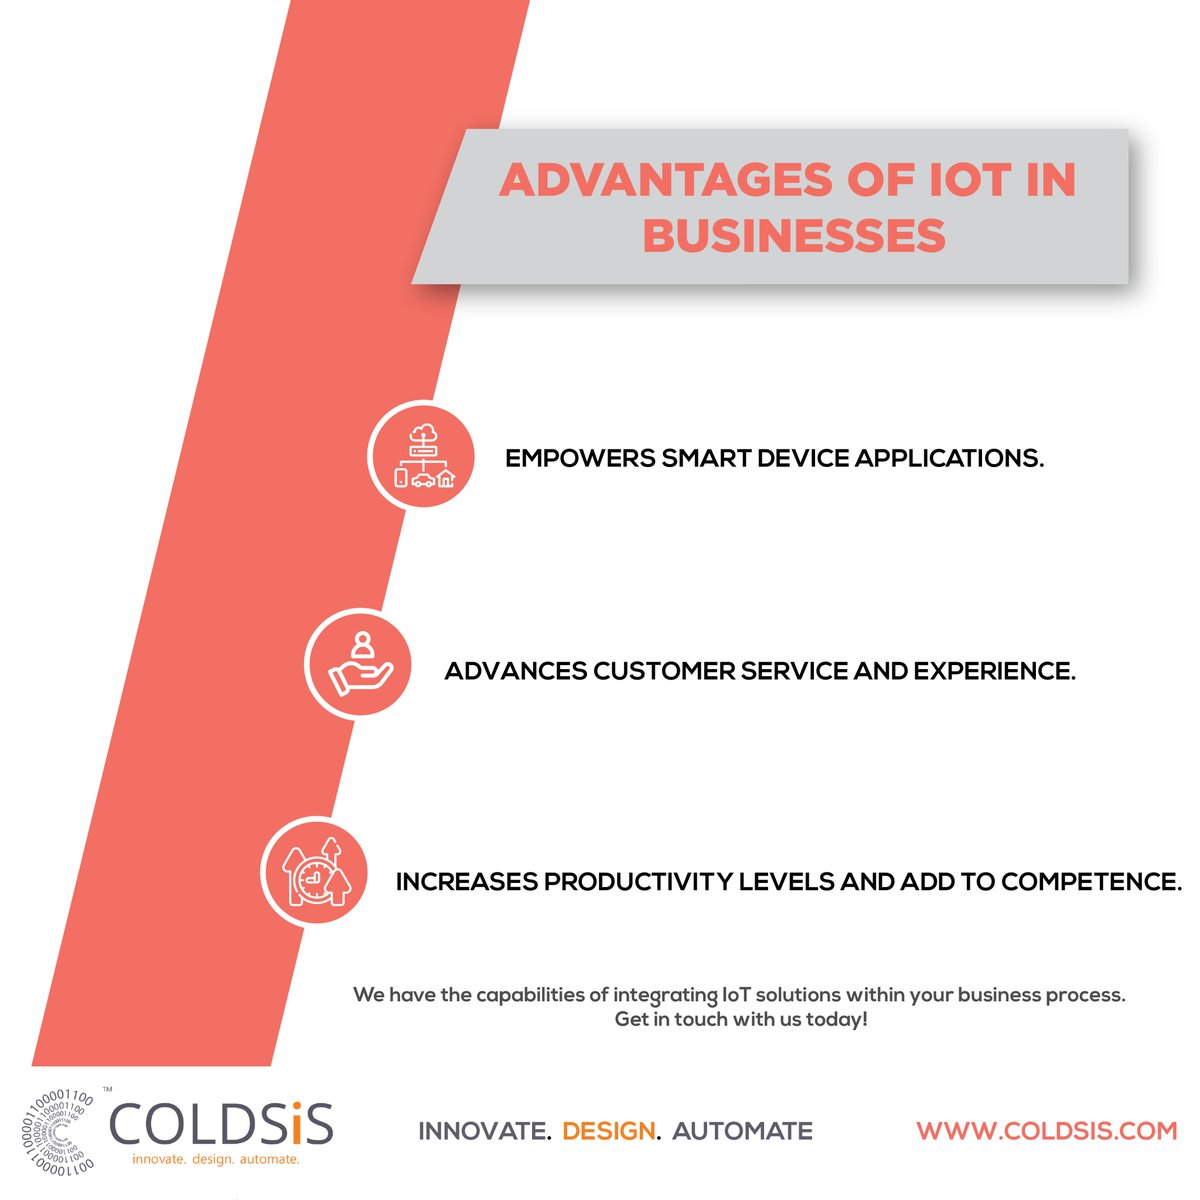 The Internet of Things is an emerging topic of technical, social, and economic significance that promises to transform the way we work, live and play. Get in touch with us today, we have the capabilities of integrating IoT solutions within your business. #coldsis #IoT #technology